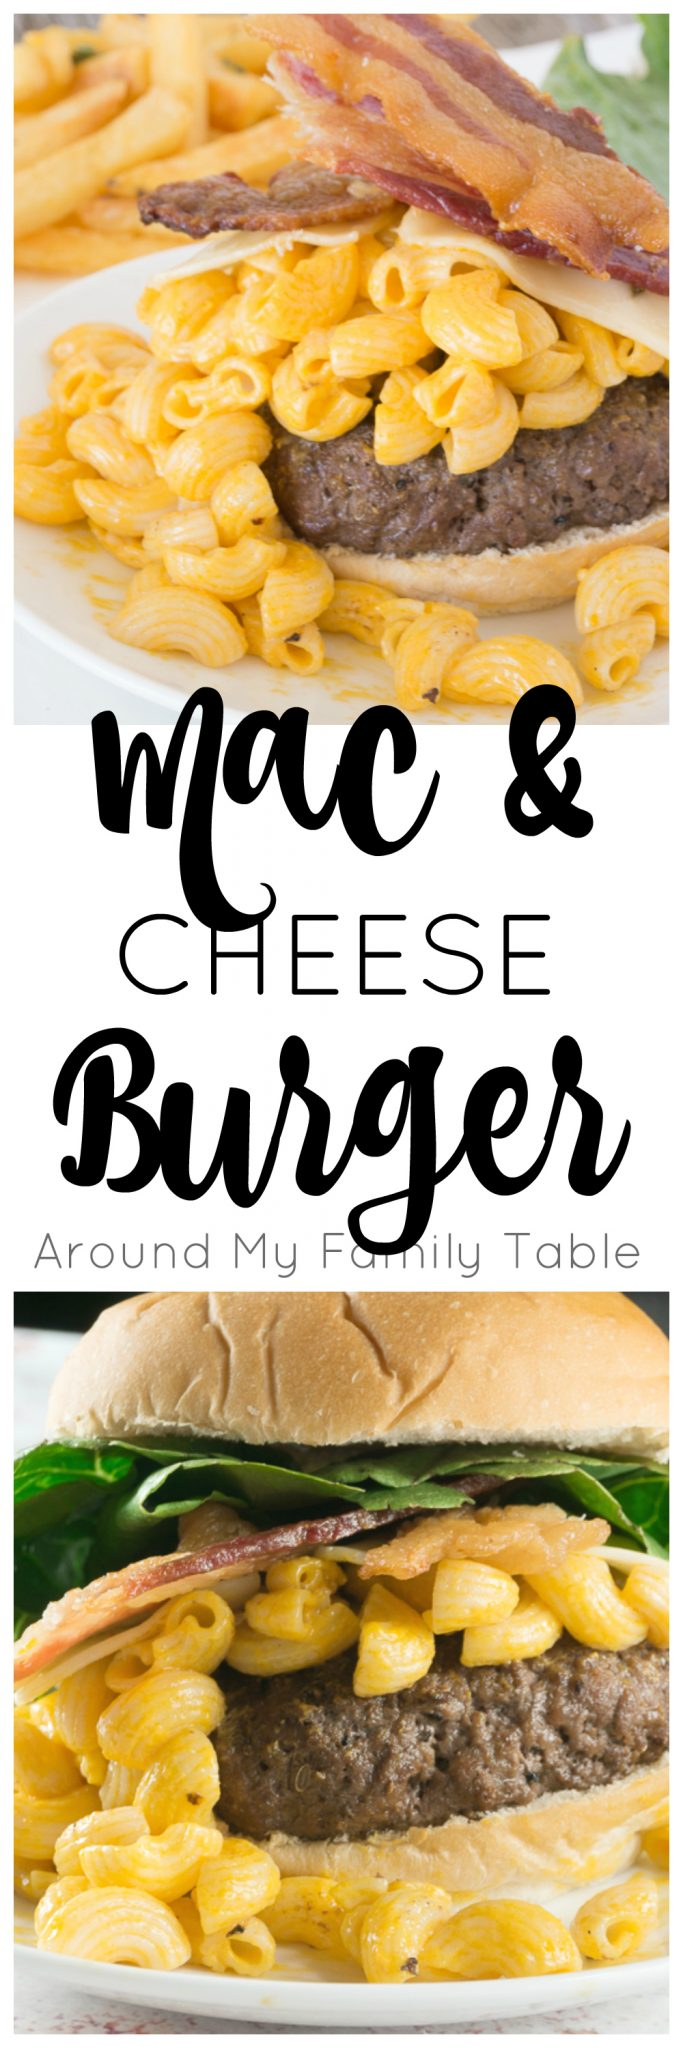 I've kicked up our plain ol' cheeseburger to this colossal Mac & Cheese Burger. A perfectly grilled burger topped with my favorite macaroni and cheese and of course loads of bacon...it's absolute perfection!